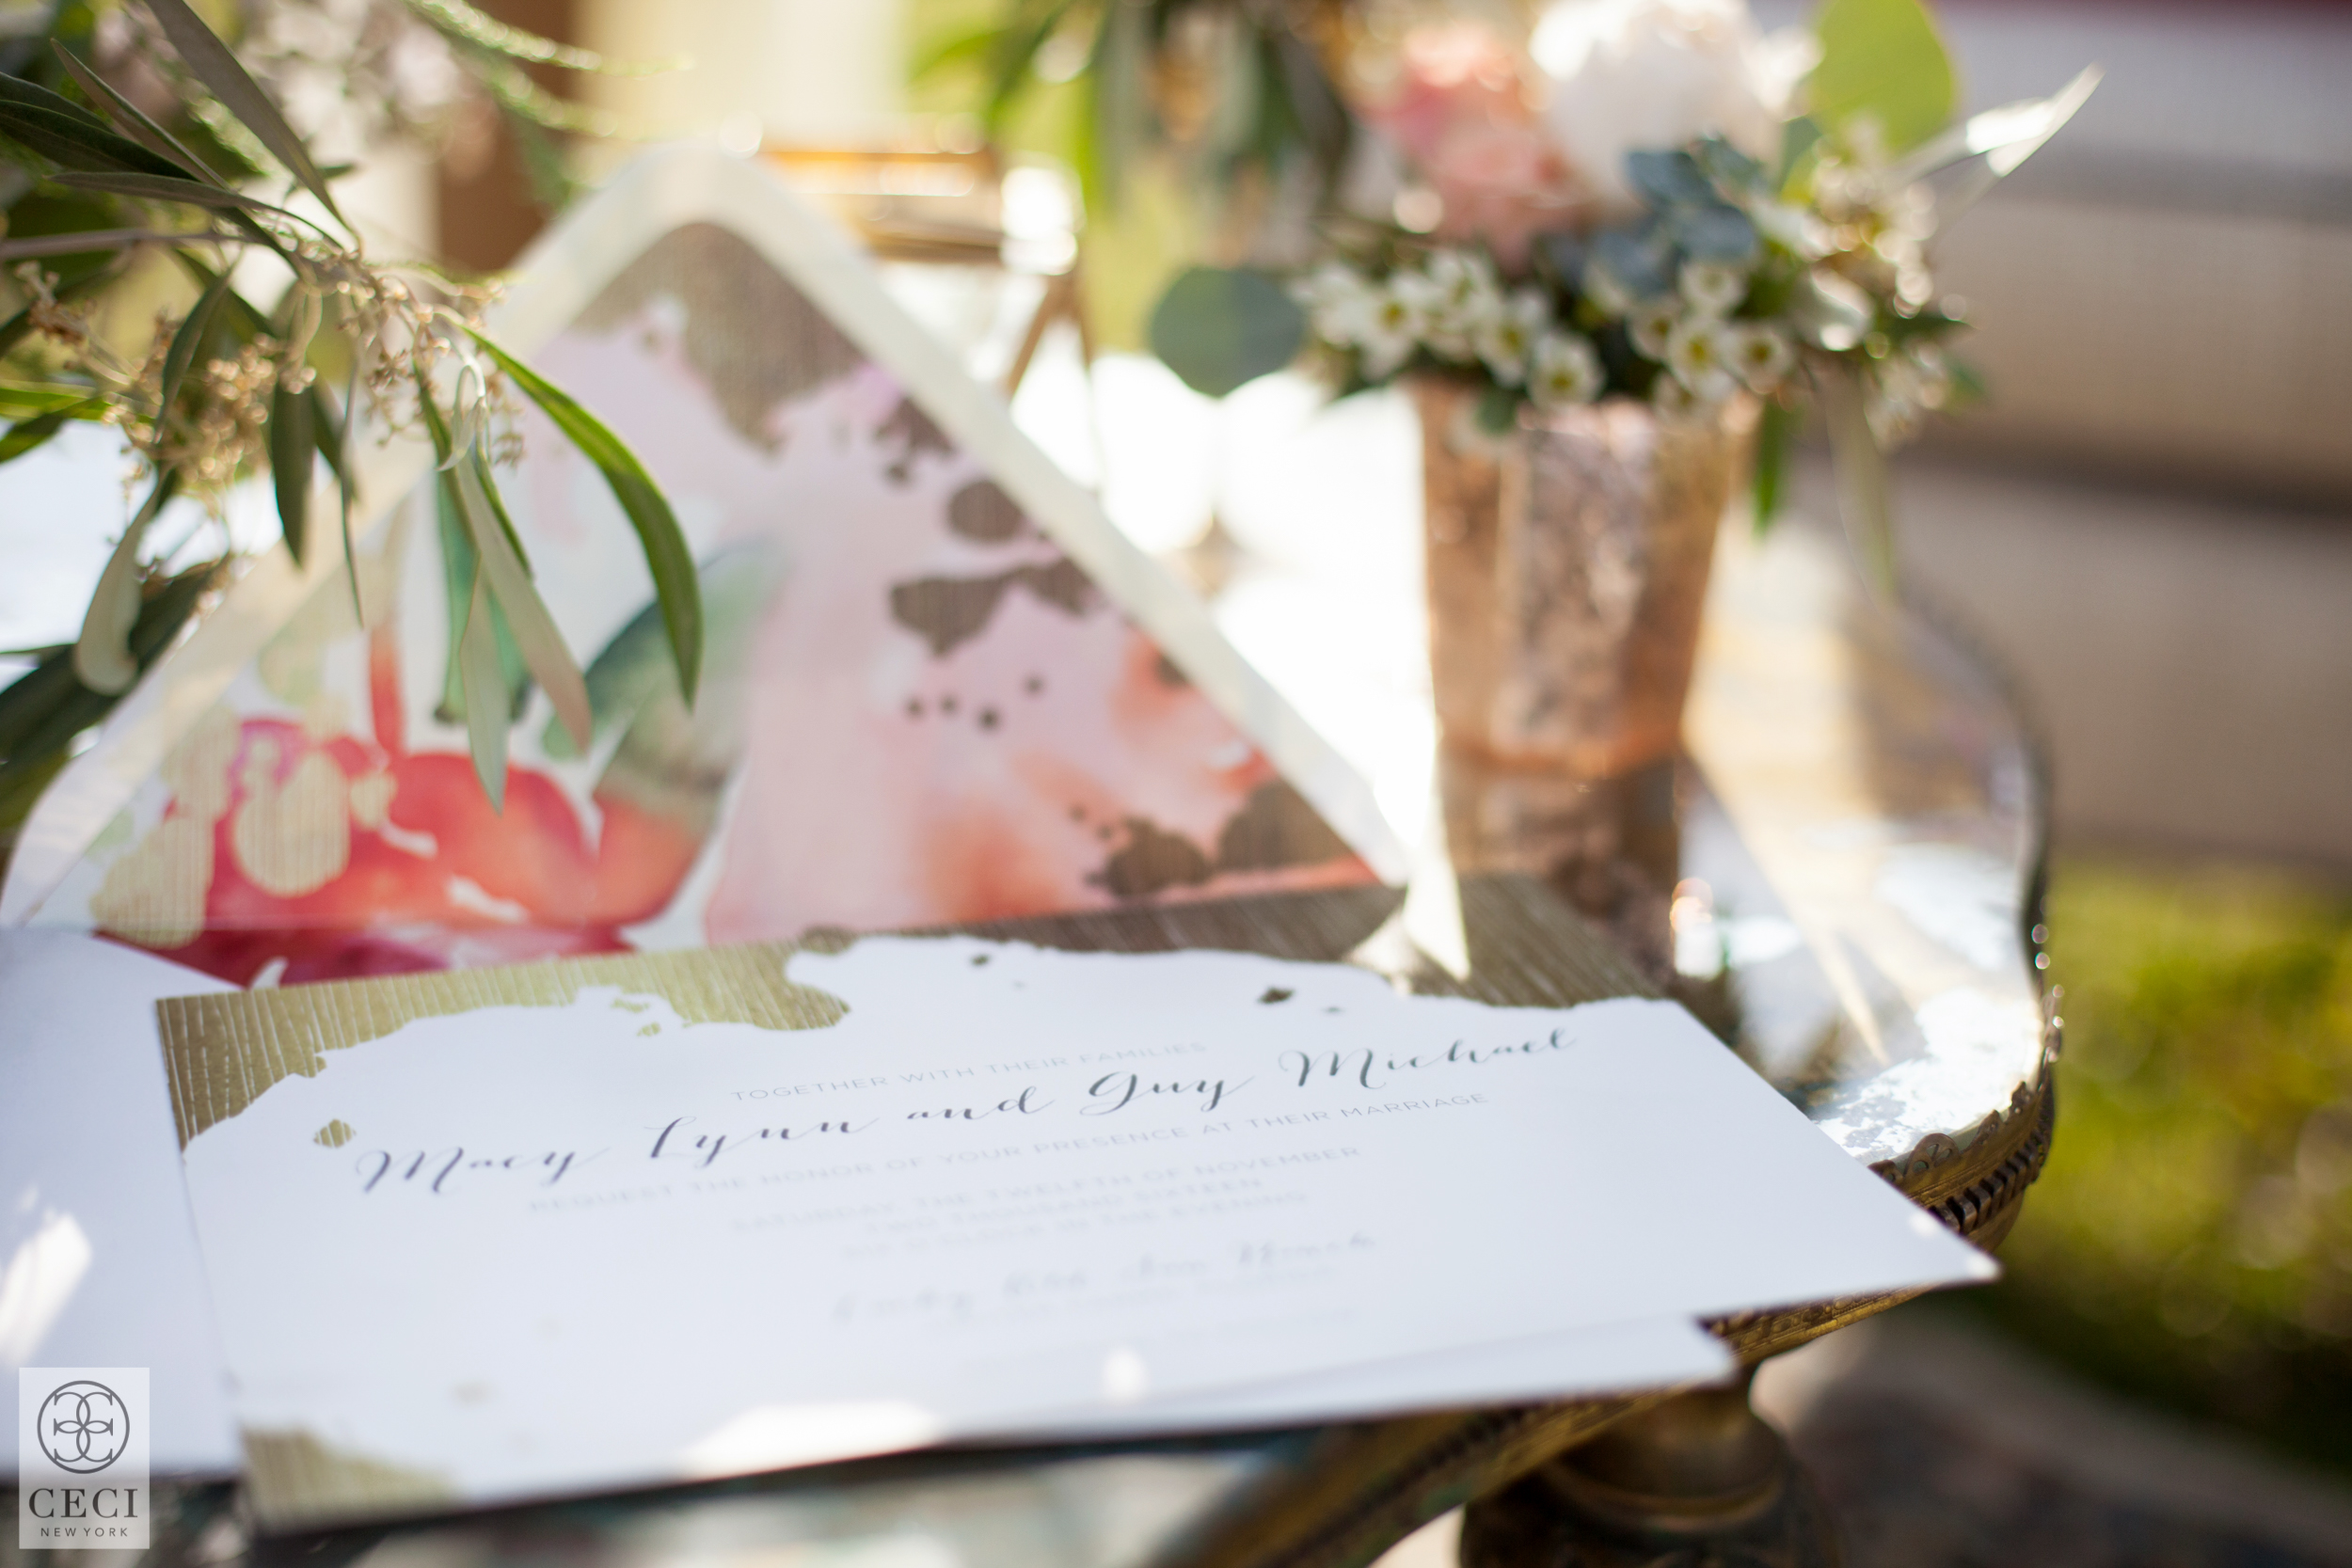 Ceci_New_York_Ceci_Style_Ceci_Johnson_Luxury_Lifestyle_Wedding_Floral_Sara_Kauss_Lucky_Sun_Ranch_Watercolor_Hand_Painted_Inspiration_Design_Custom_Couture_Personalized_Invitations_-4.jpg